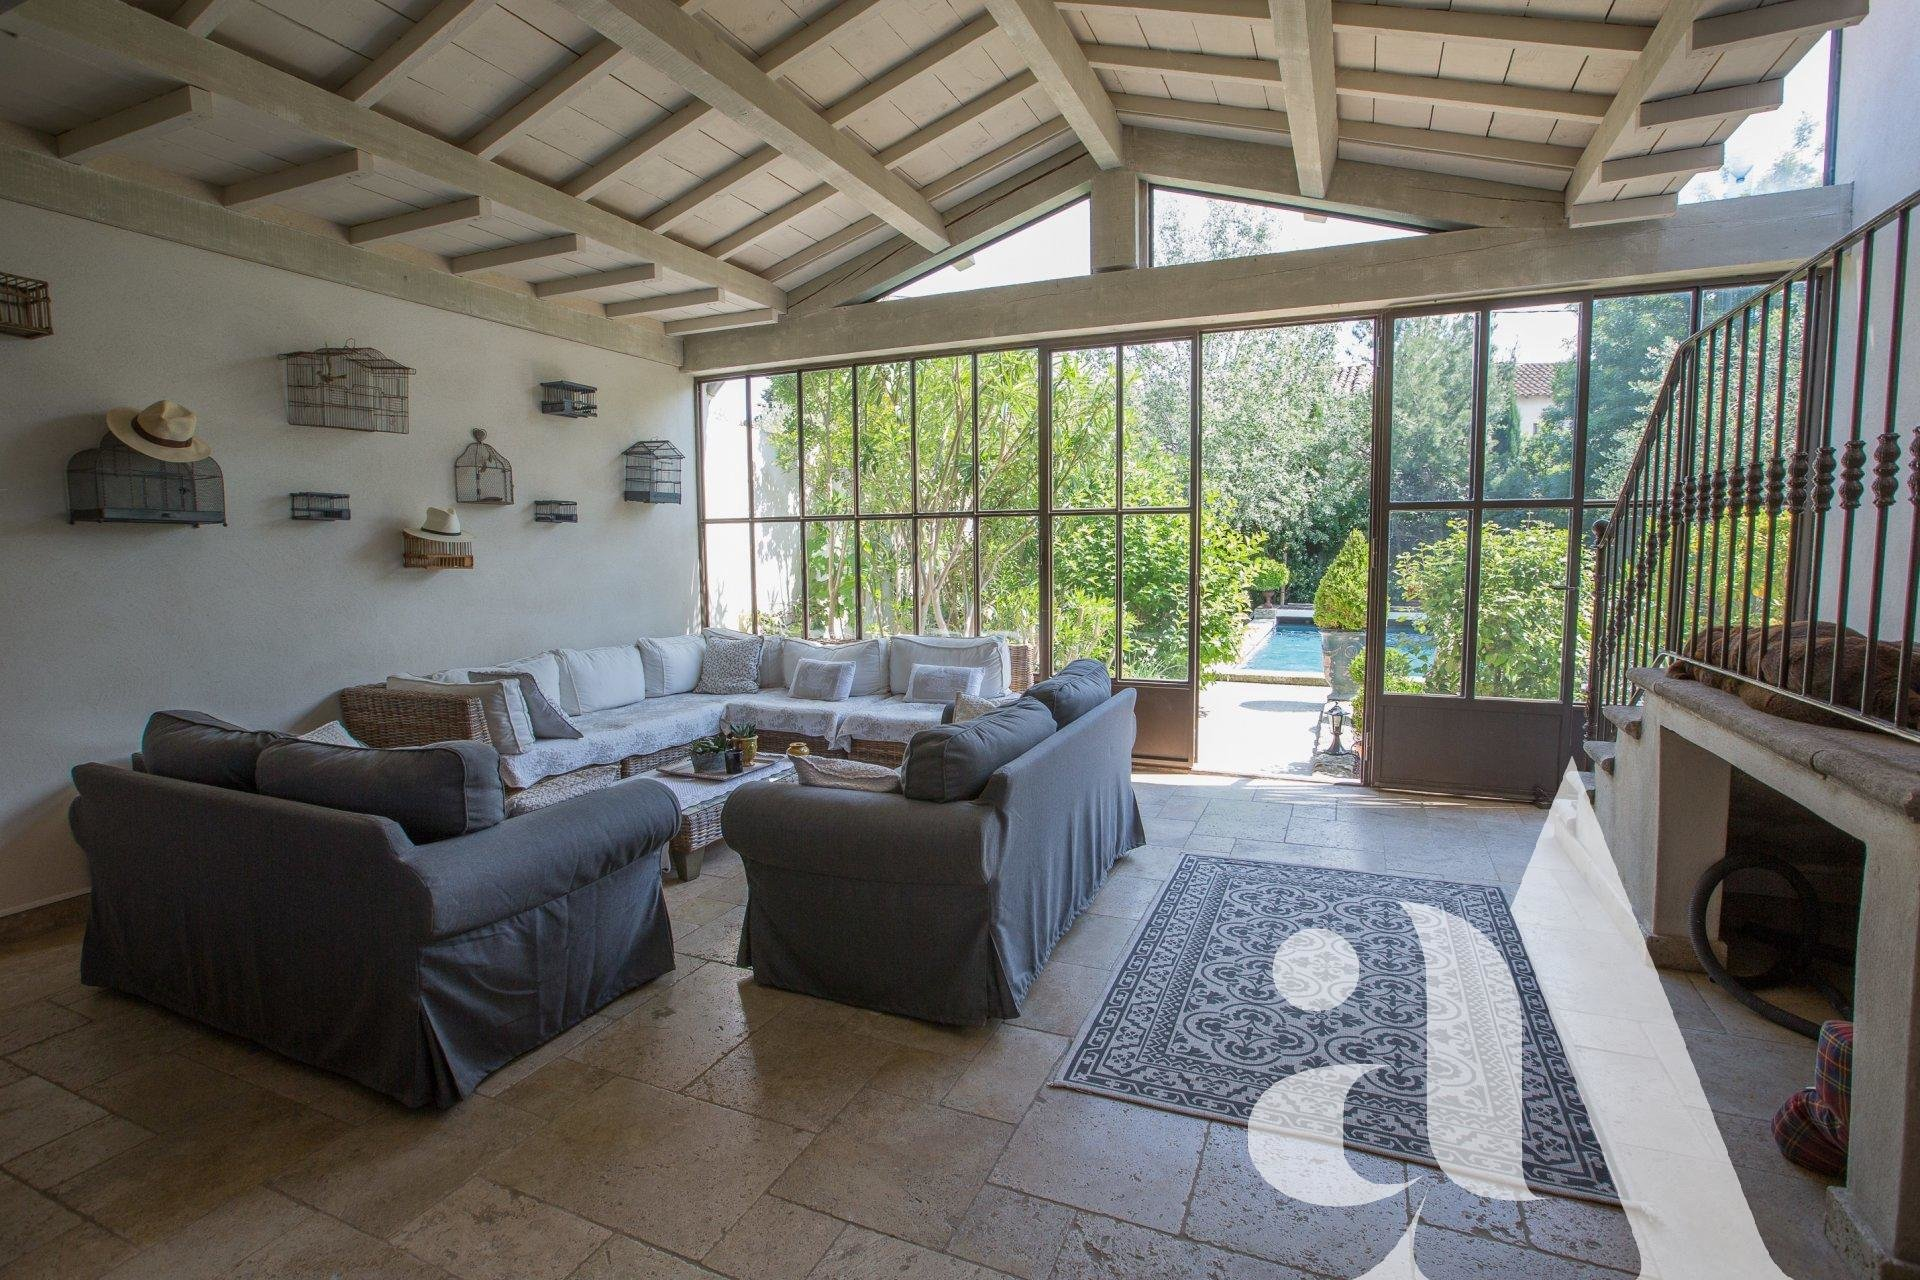 VILLA PIVOINE - Saint Rémy de Provence - Alpilles - 4 bedrooms - 8 peoples